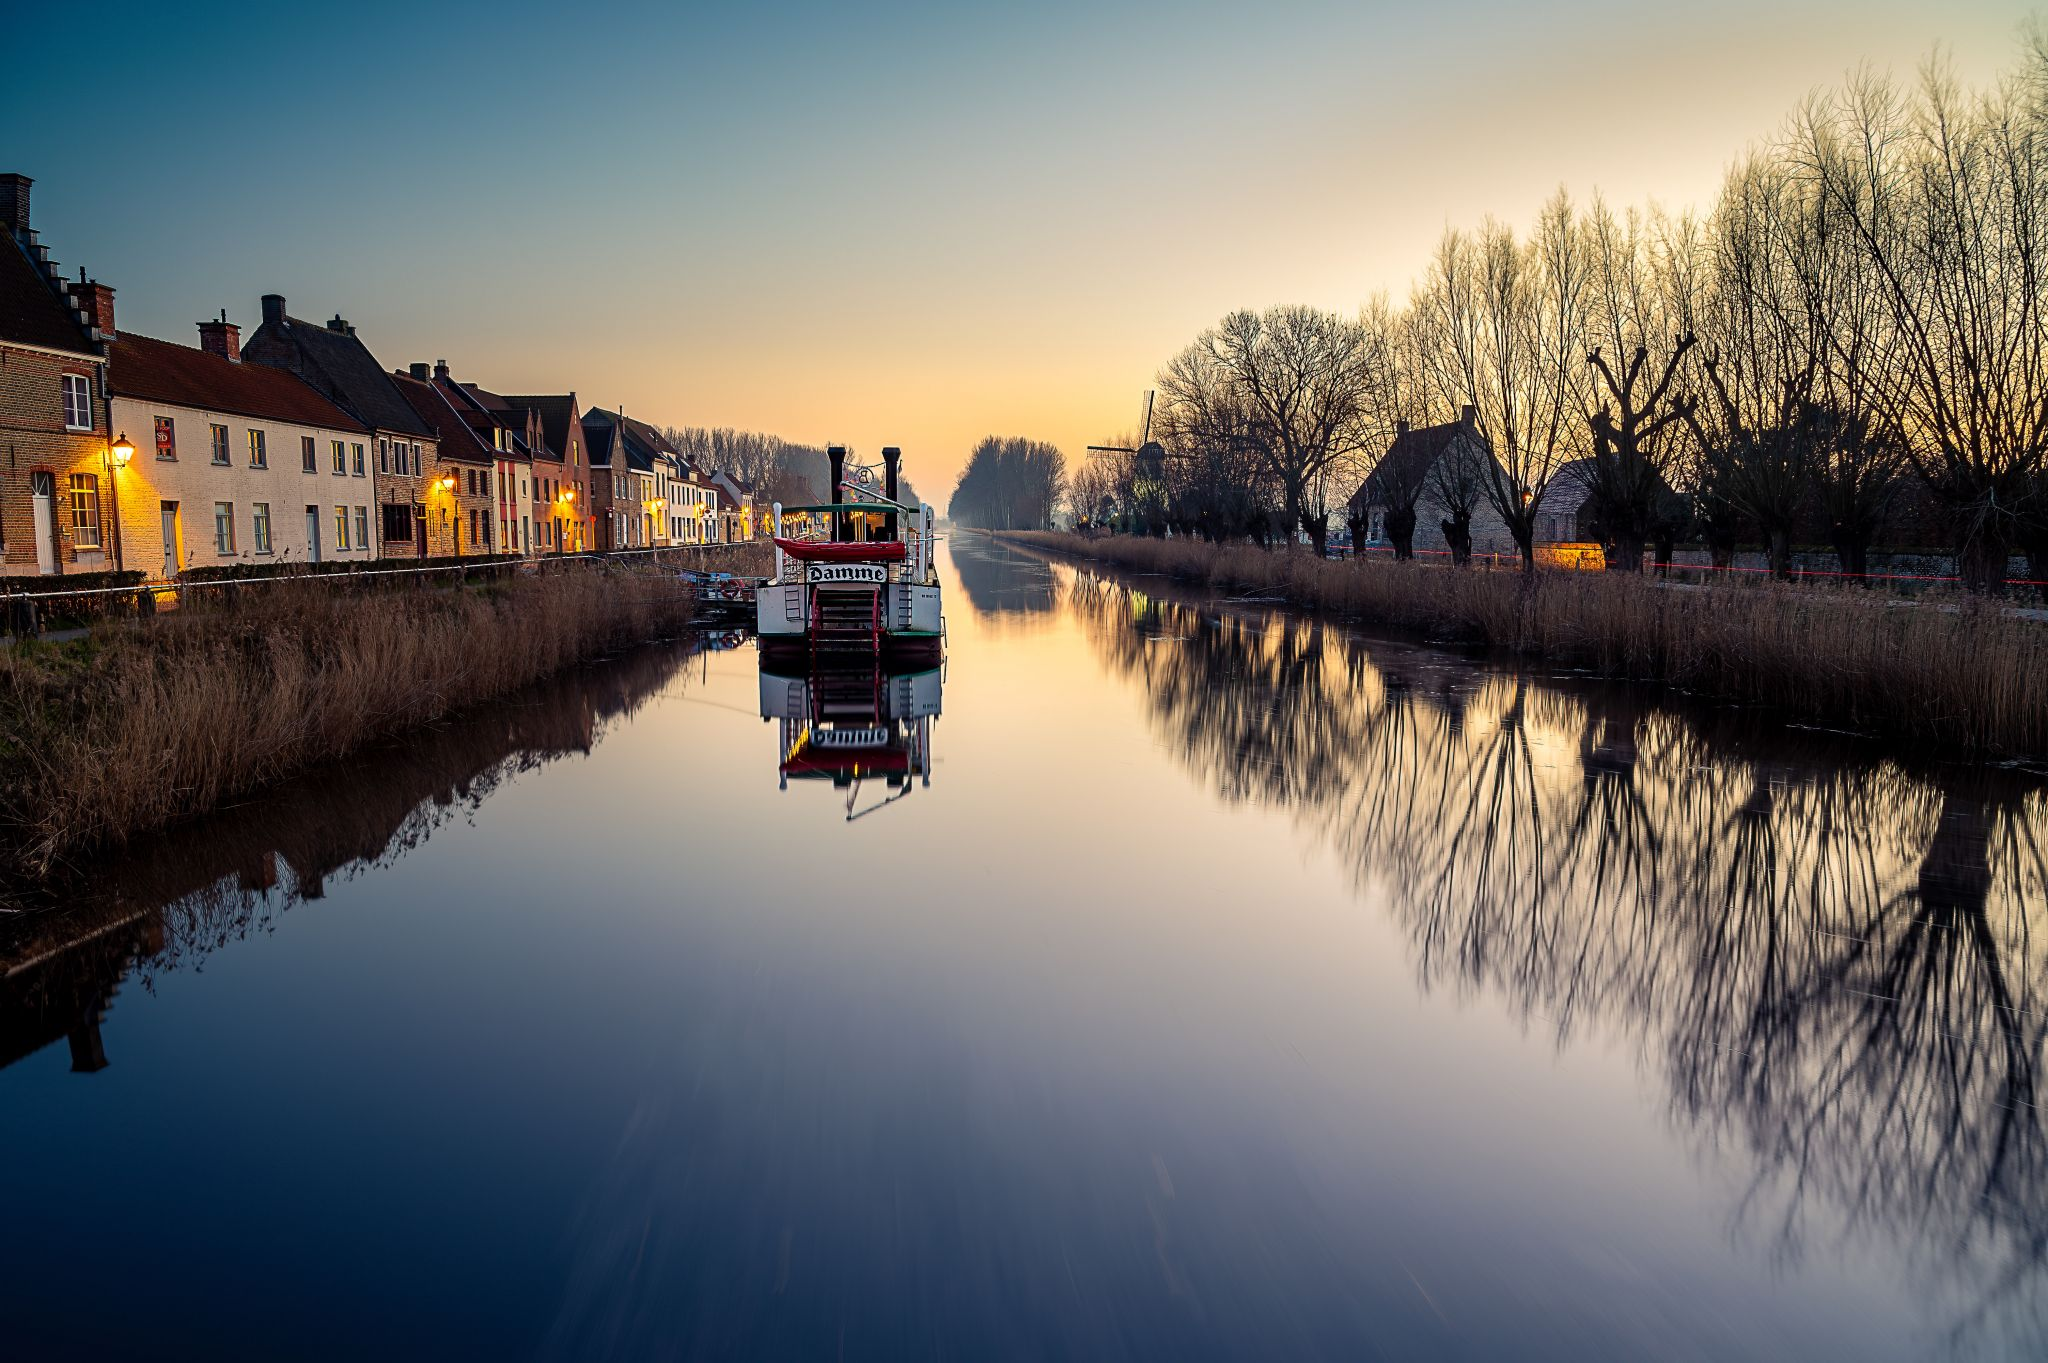 Damme Canal (boat), Belgium